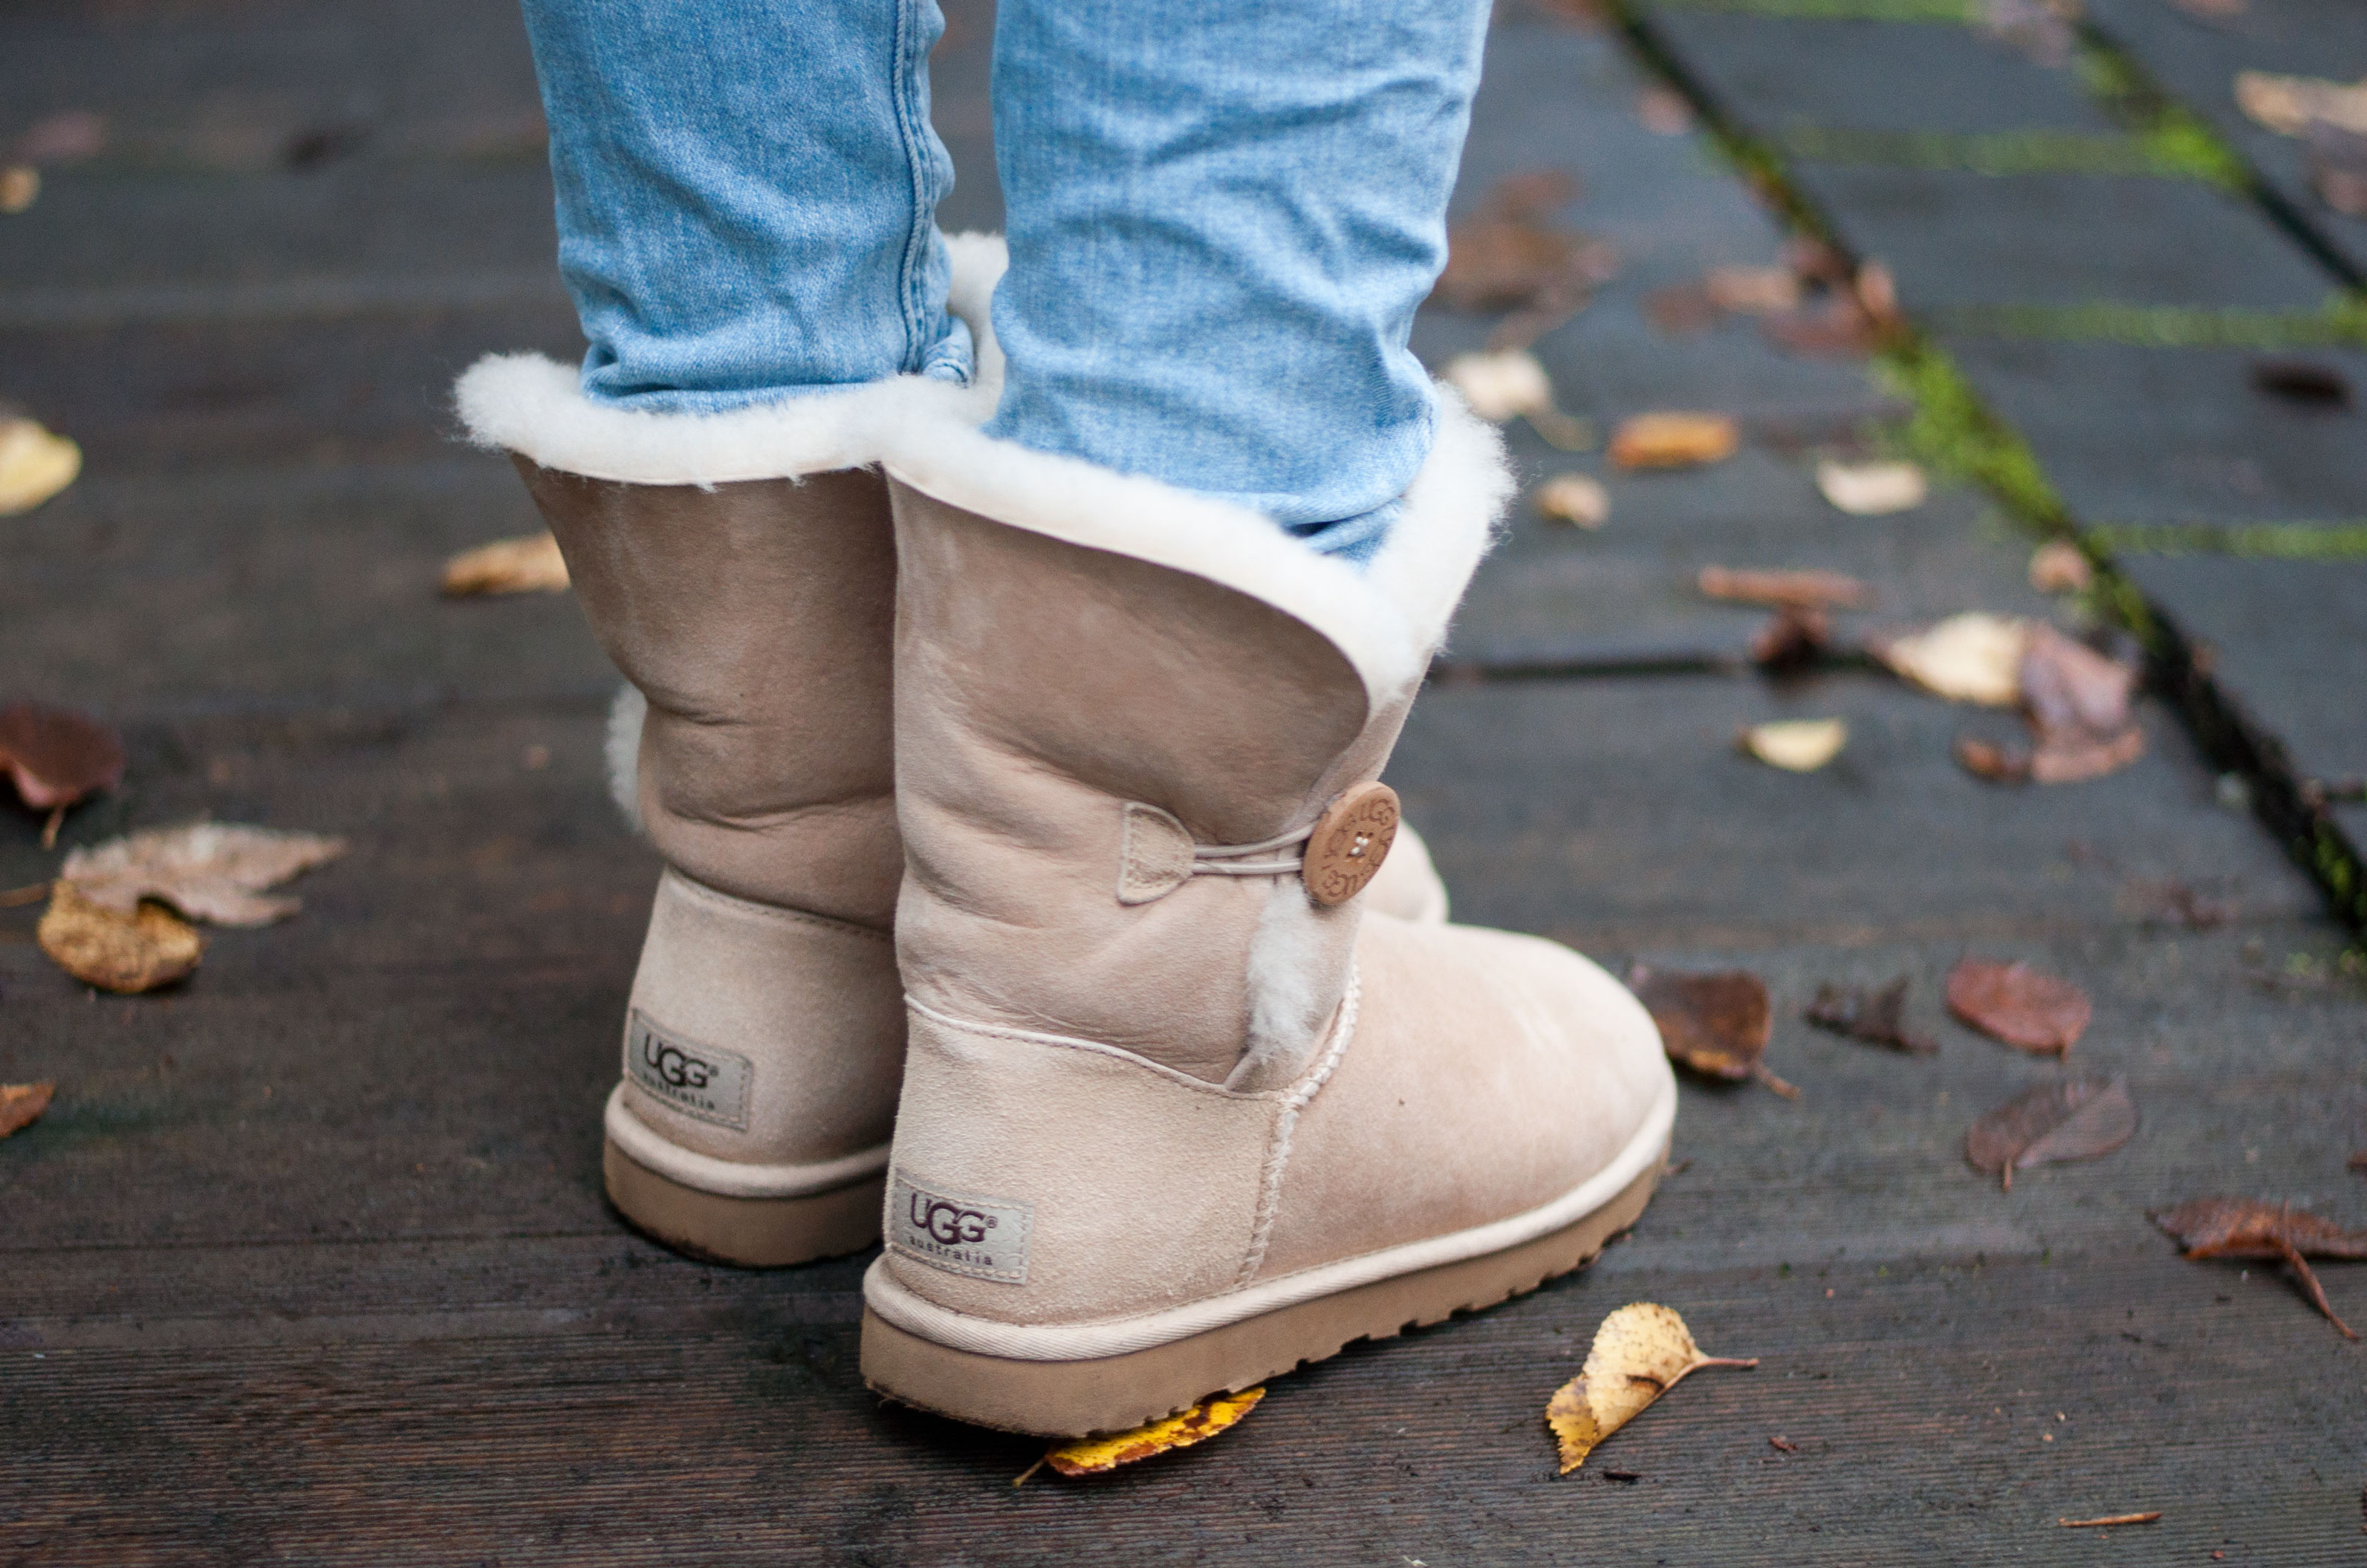 Ugg Boots Baily Button sand